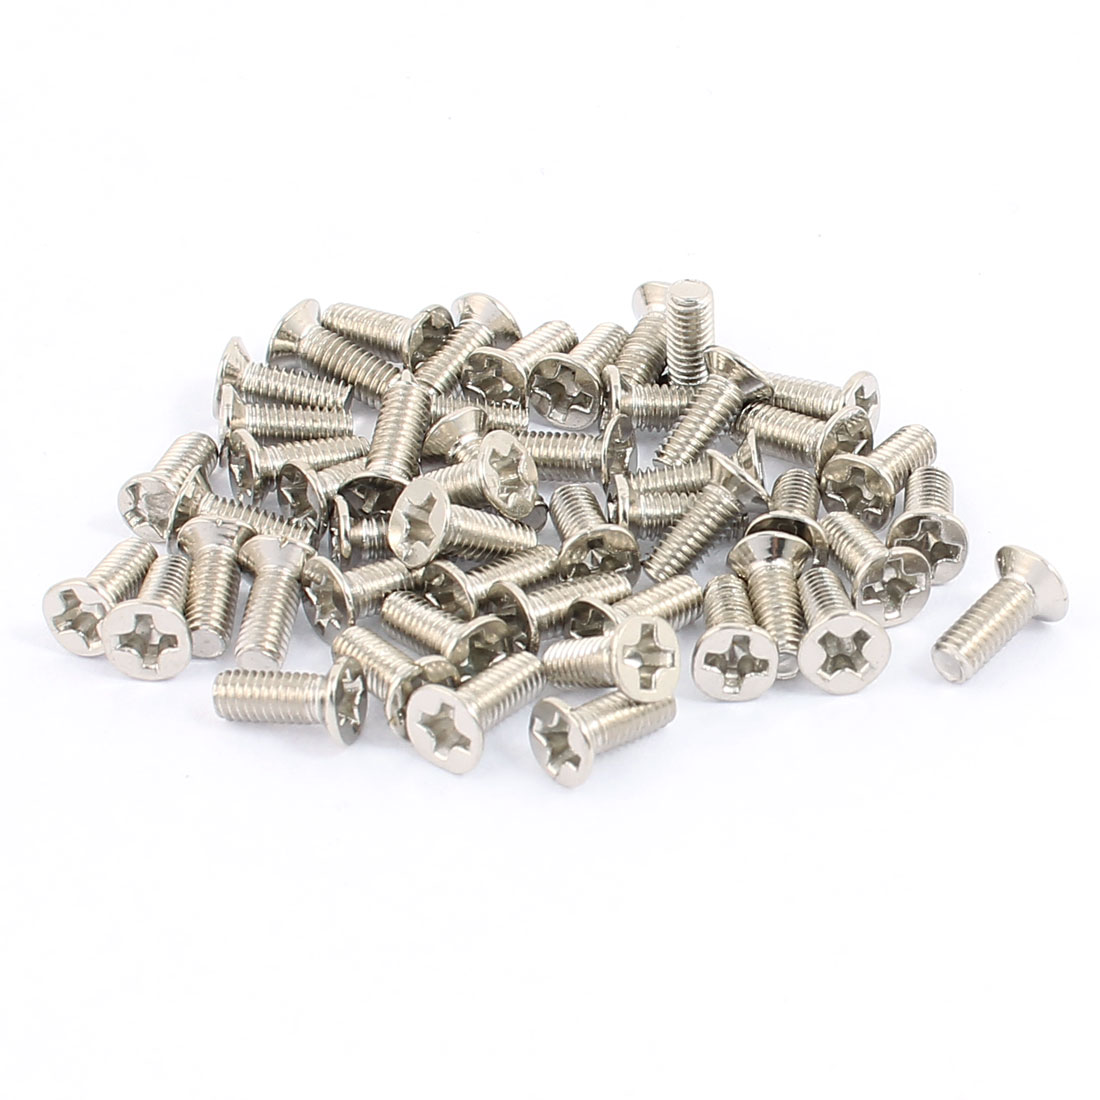 50 Pcs M3x8mm Stainless Steel Countersunk Flat Head Phillips Machine Screws Bolts